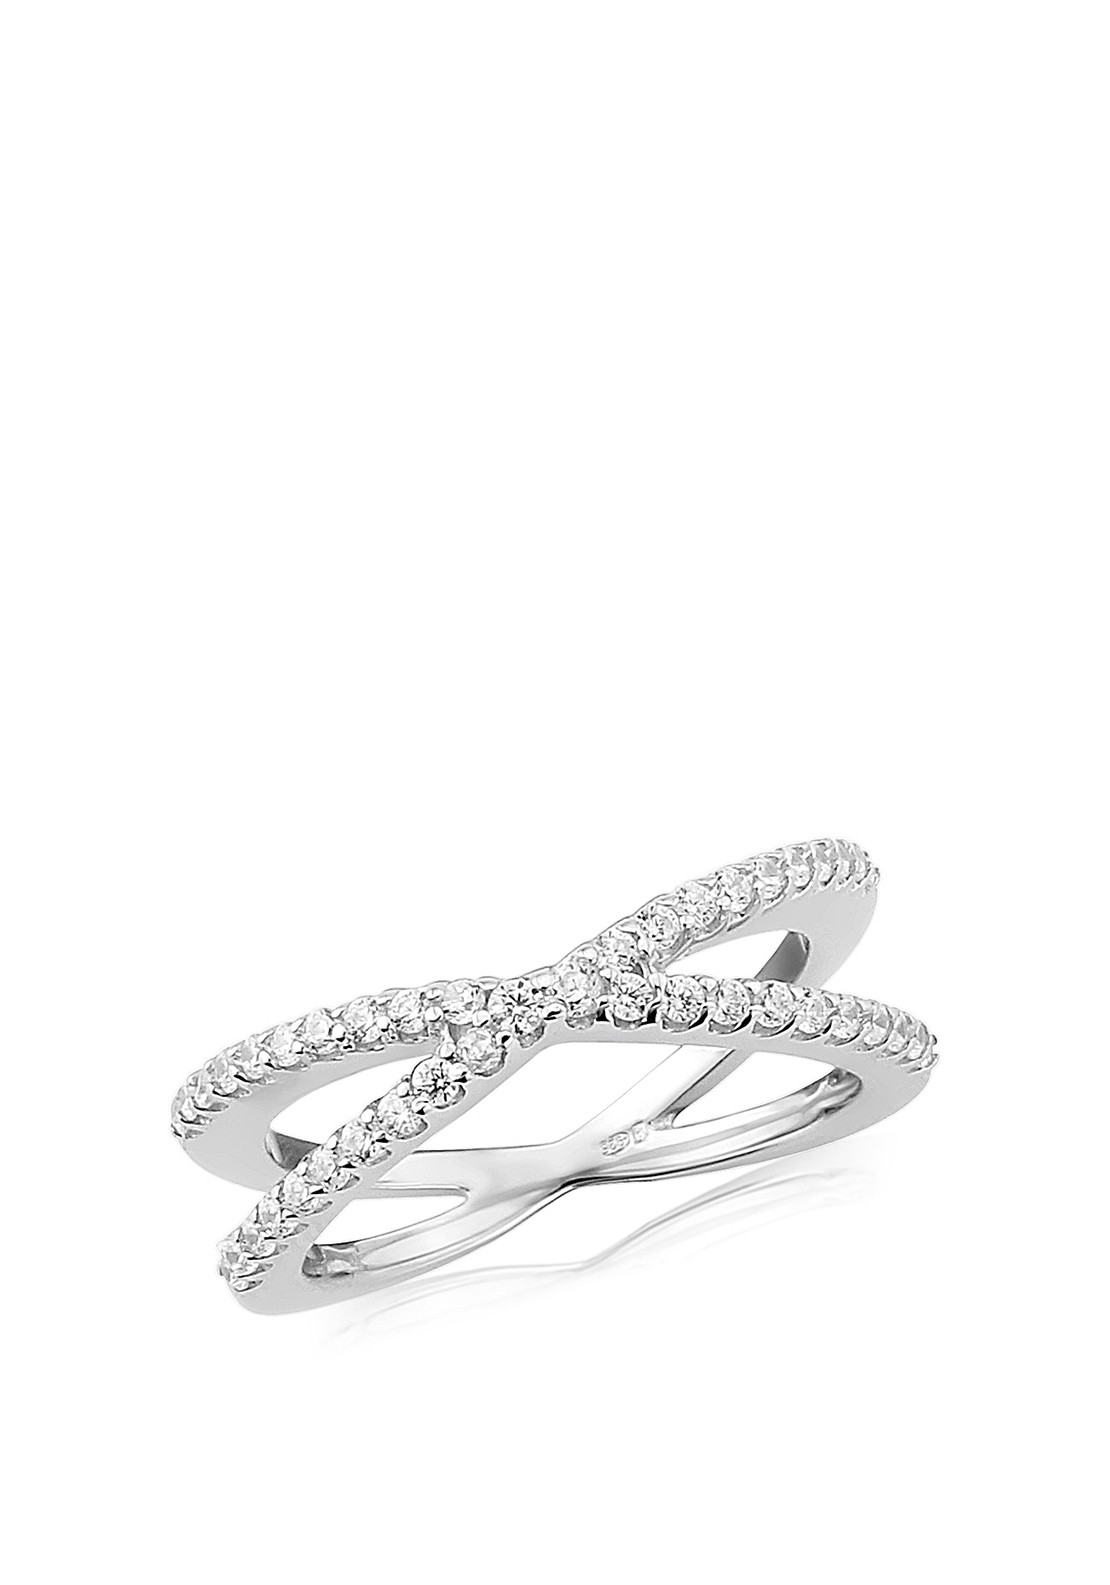 Waterford Crystal Criss Cross Pave Silver Ring, Small